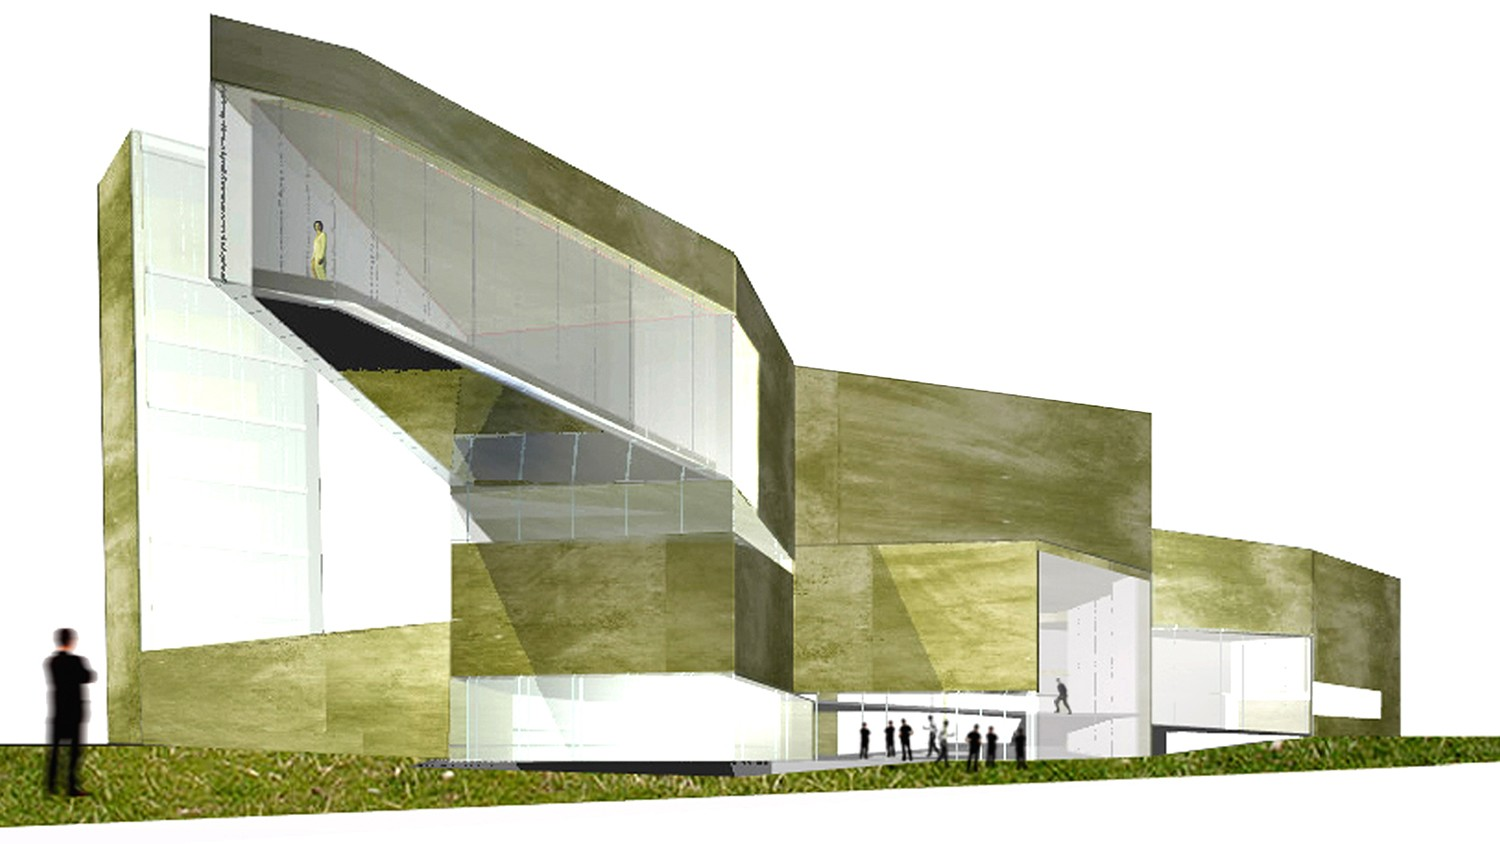 https://stevenholl.sfo2.digitaloceanspaces.com/uploads/projects/project-images/StevenHollArchitects_Confluence_parkentryblack_WH.jpg